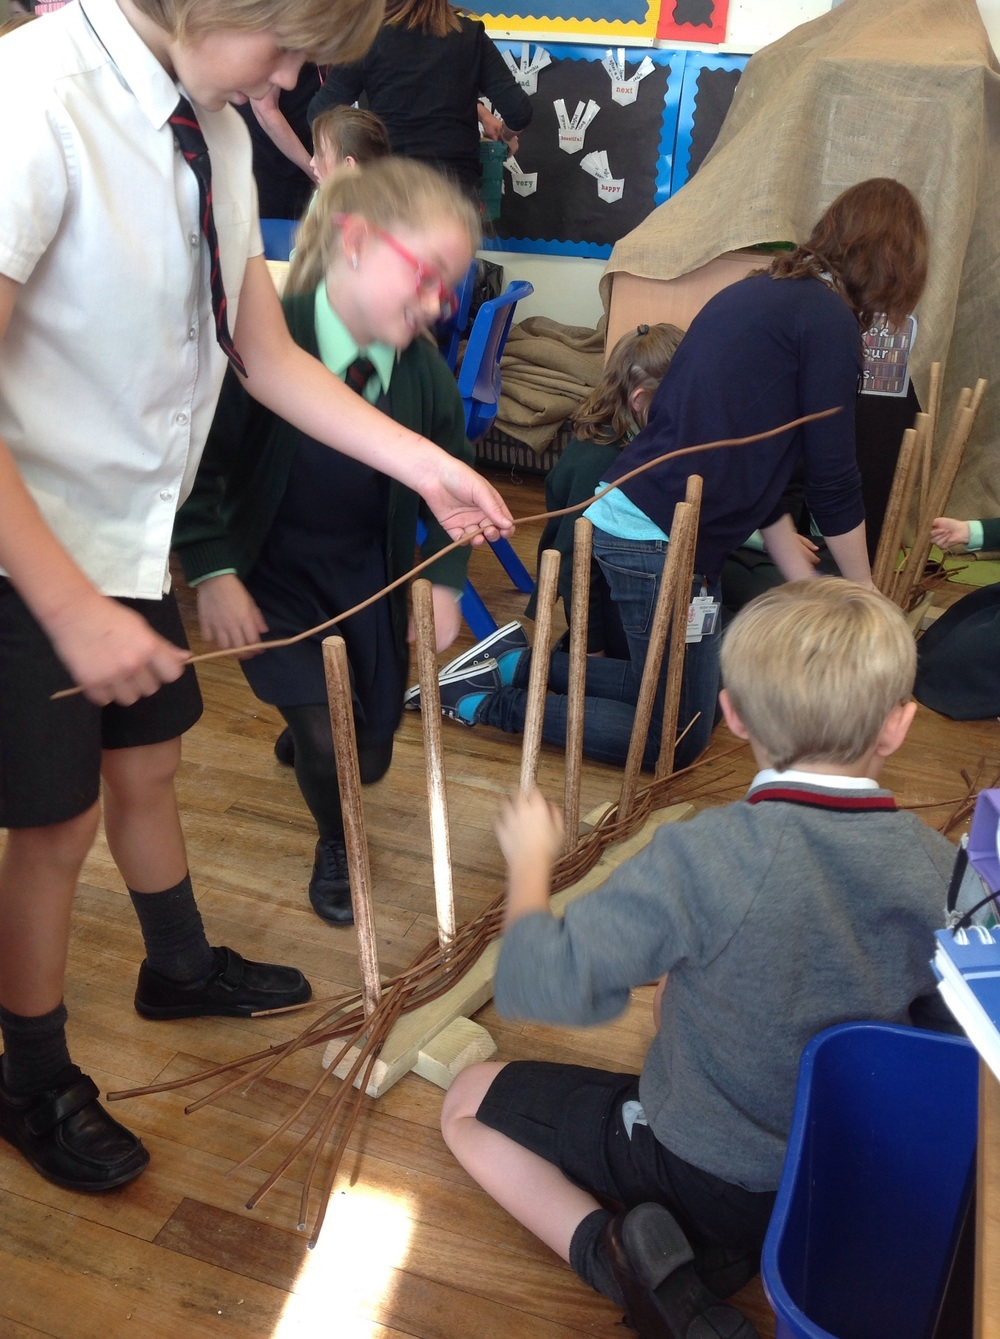 Weaving sticks to build fences.